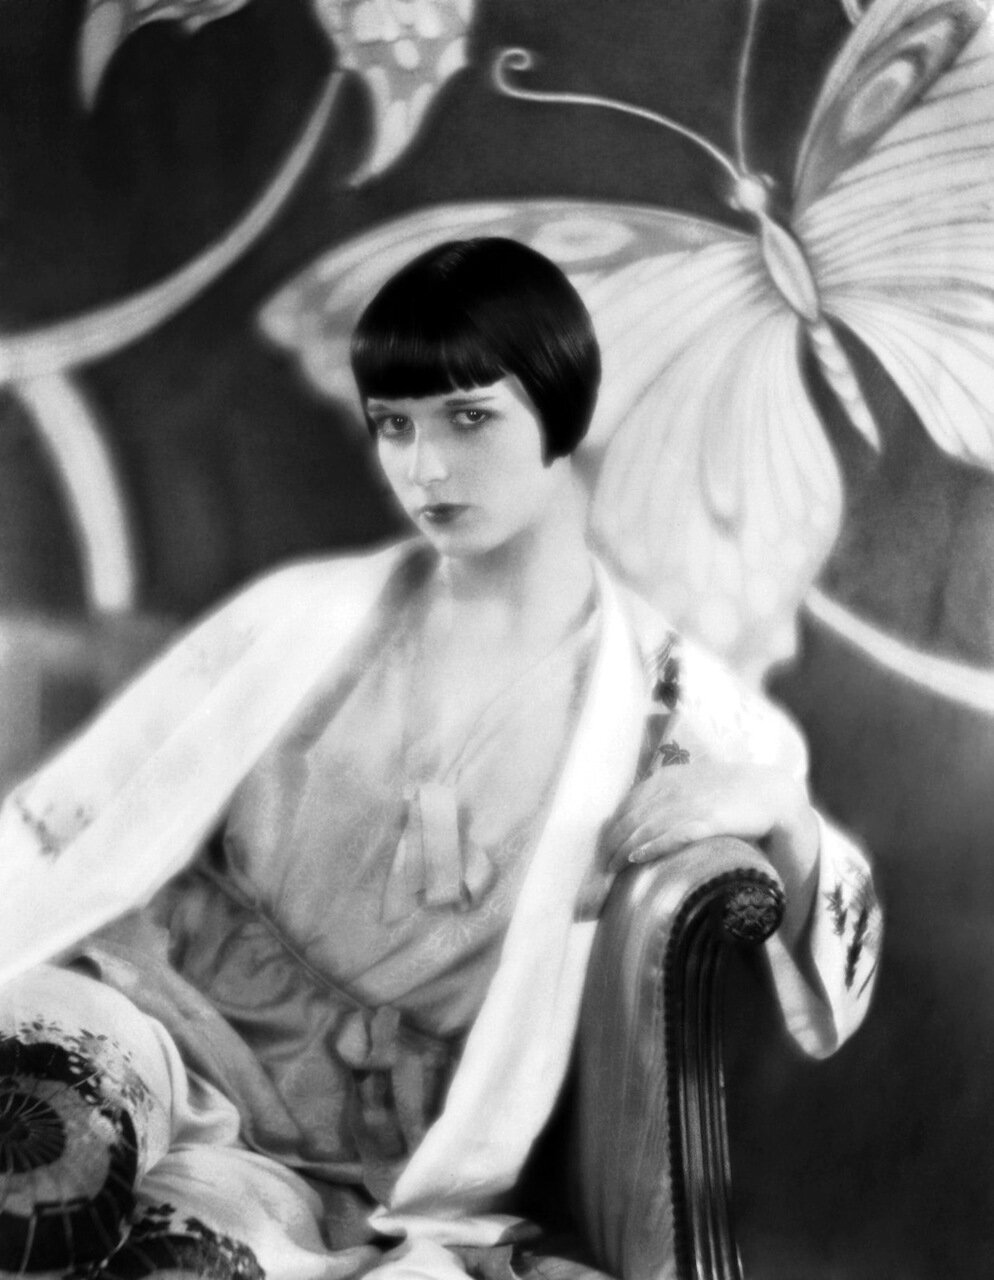 circa 1926: American actress Louise Brooks (1906 - 1985) sitting on an armchair in front of a screen decorated with butterflies. (Photo by Eugene Robert Richee)